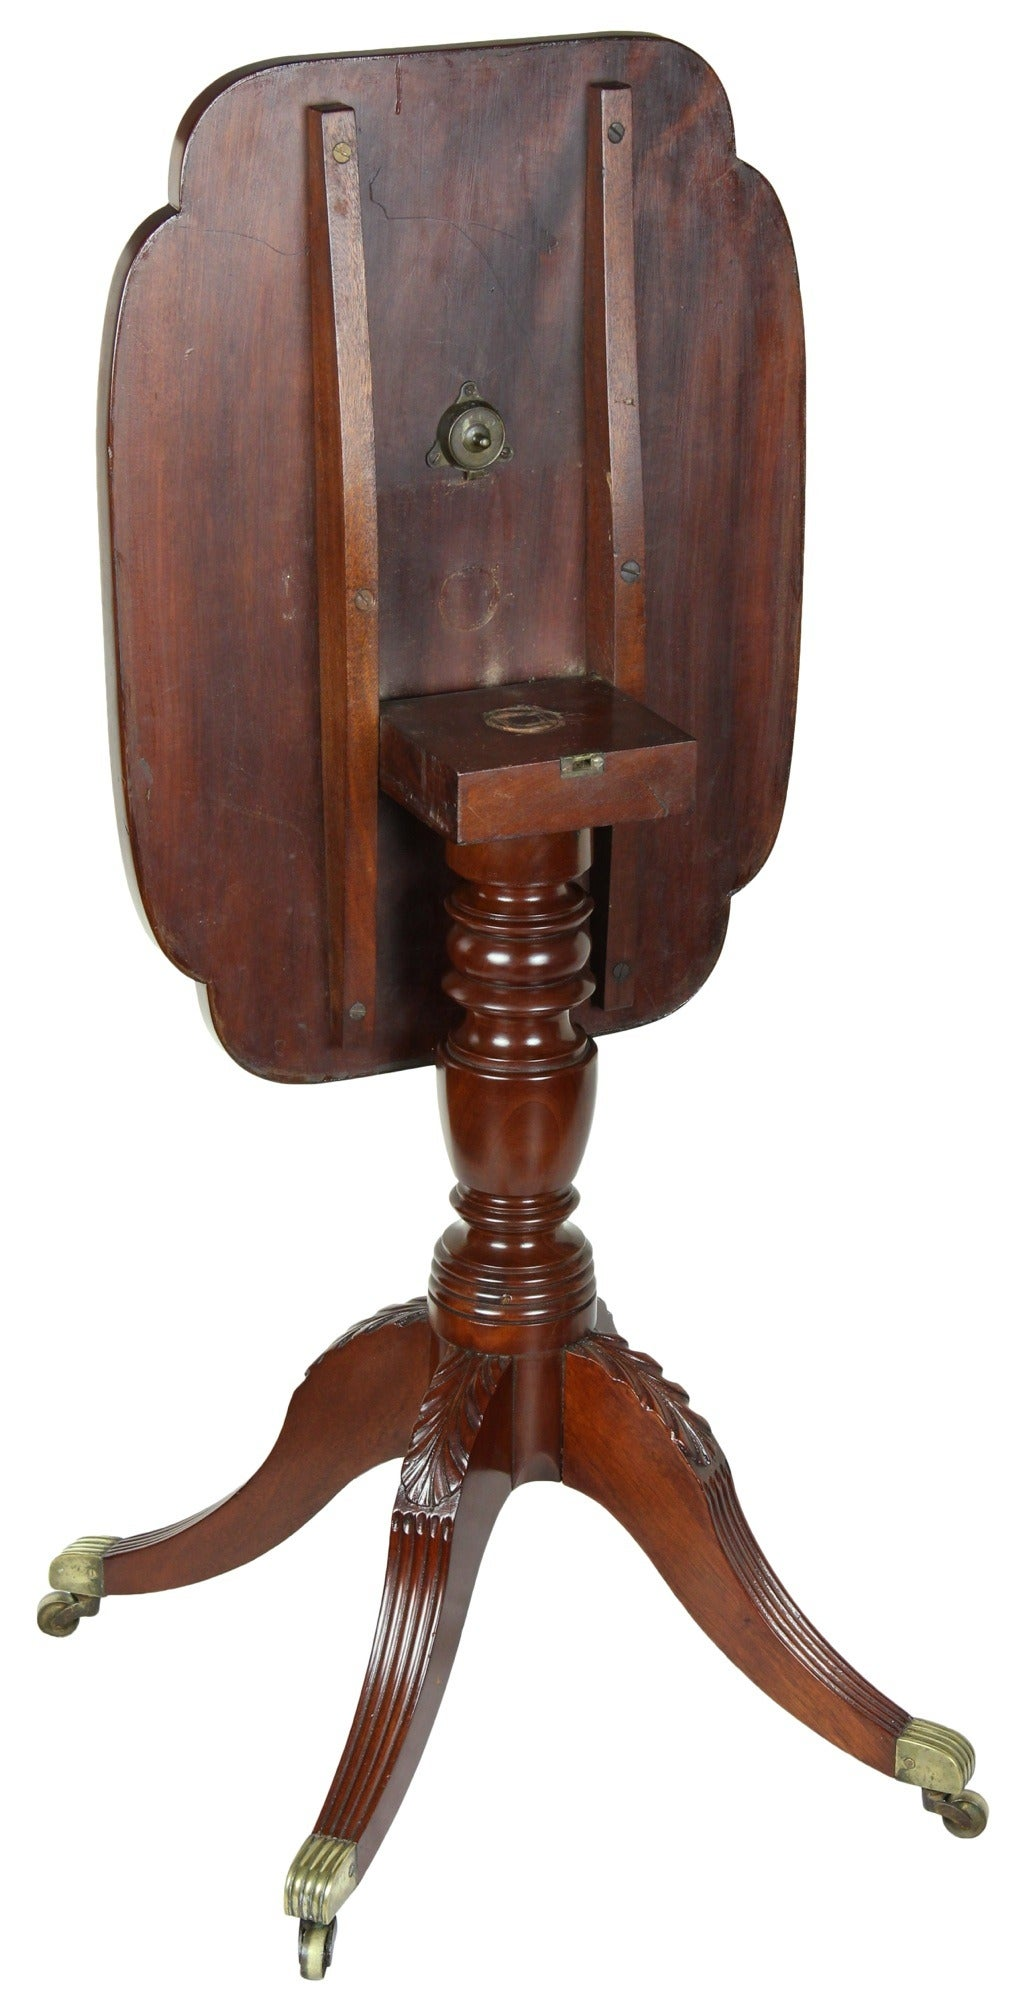 American Classical Classical Tilt-Top Candlestand with Four Legs, Phyfe School, New York For Sale